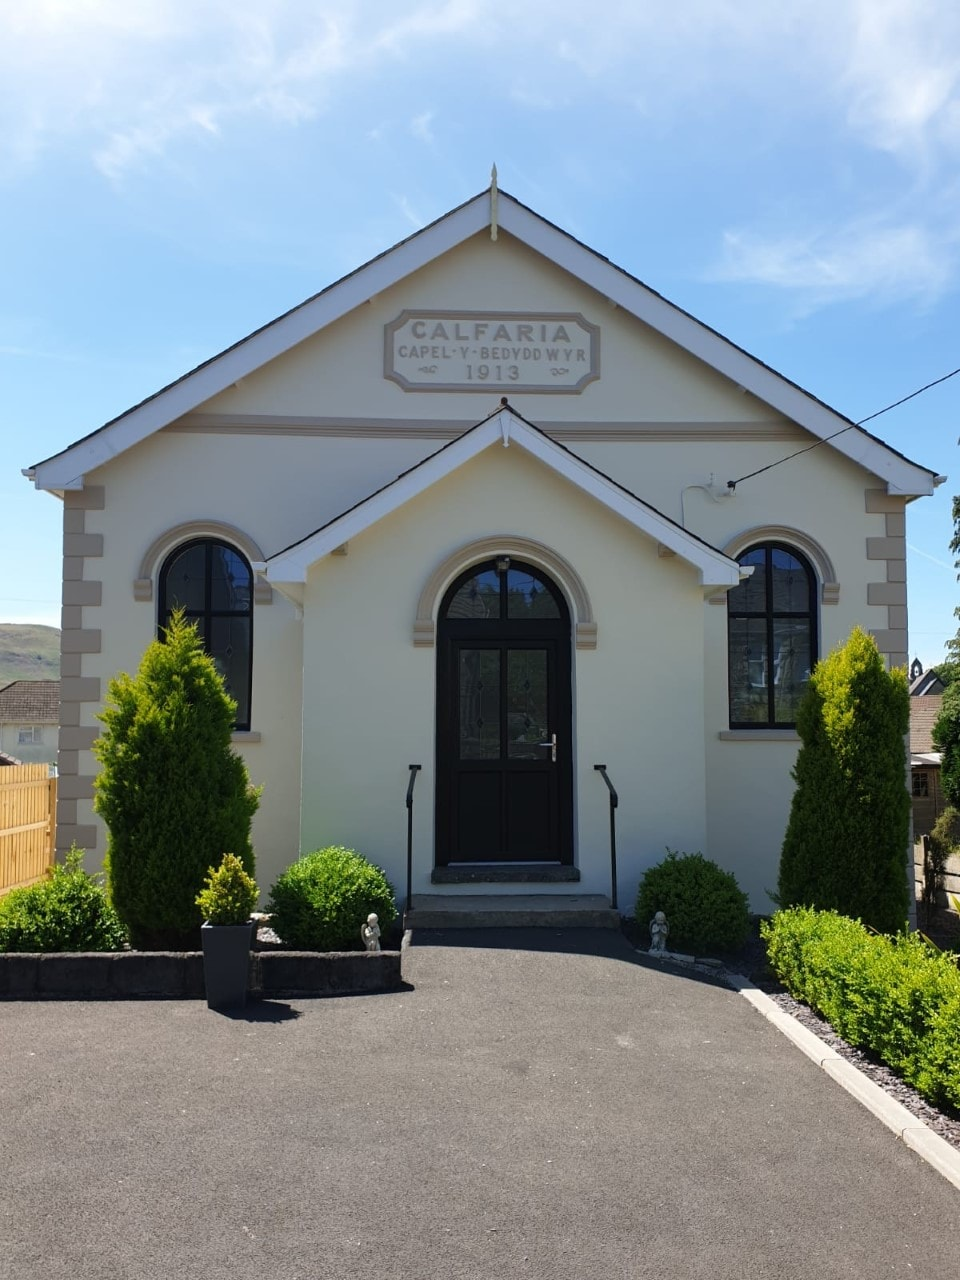 Front Exterior View of Calfaria Chapel painted by Premier Painters and Decorators Swansea